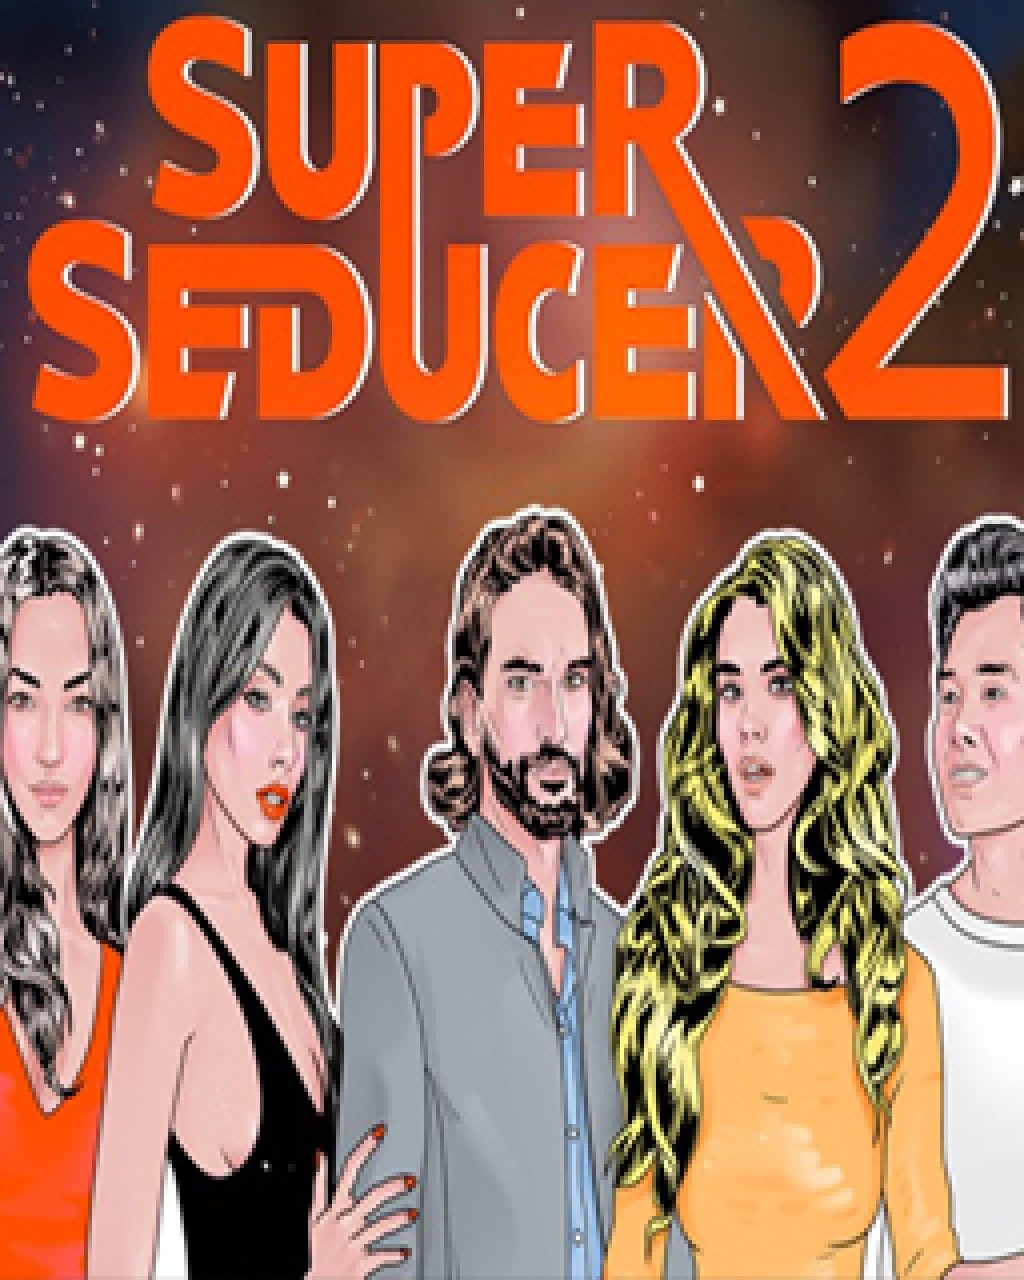 Super Seducer 2 Advanced Seduction Tactics